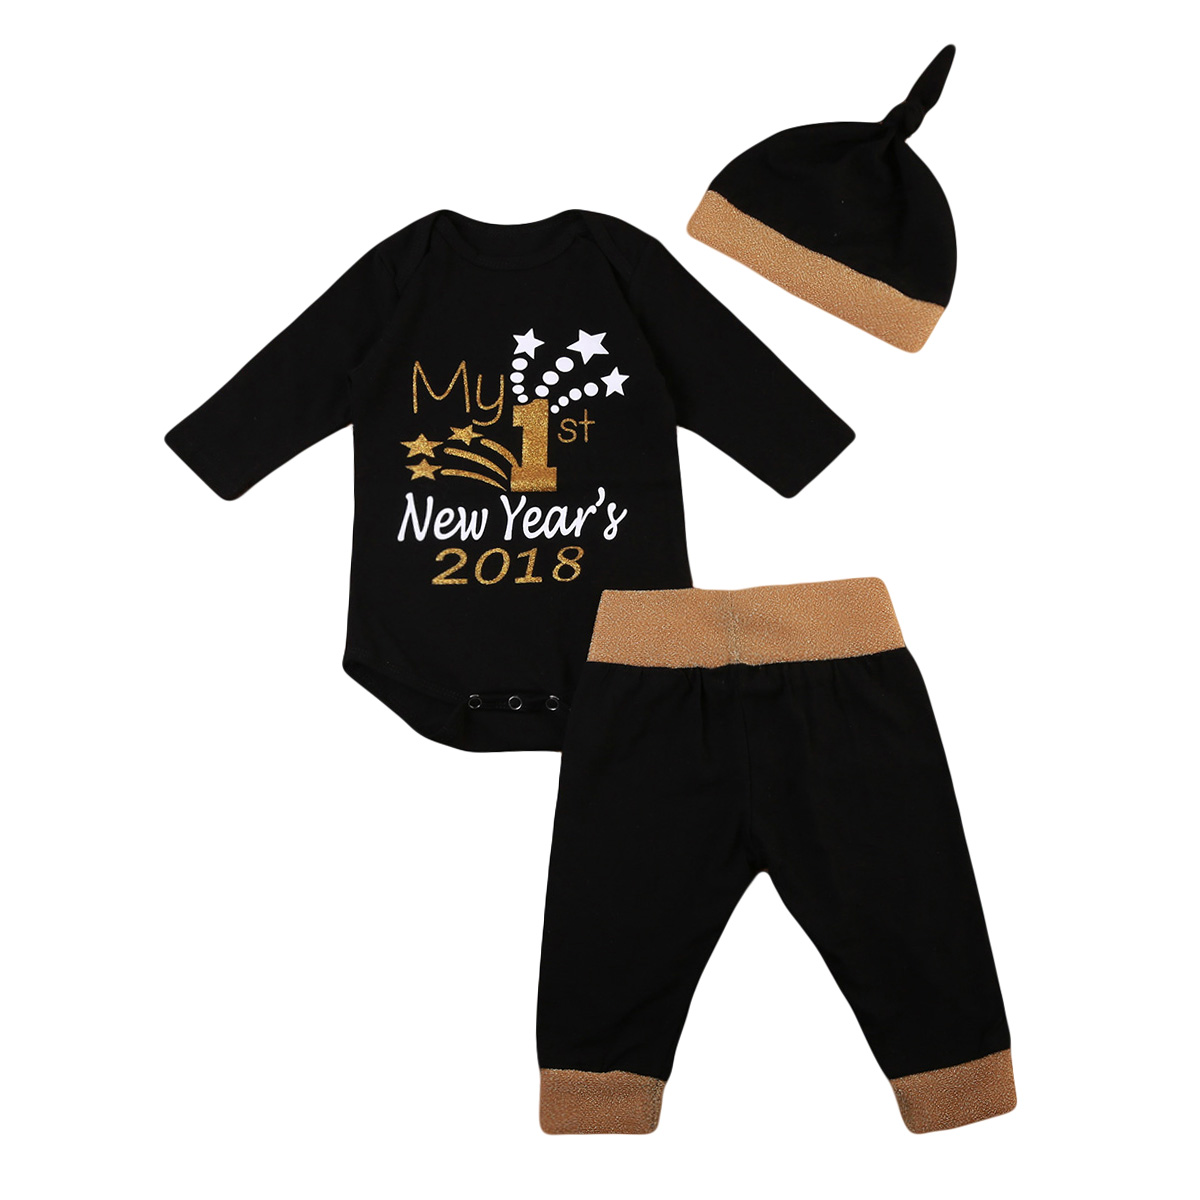 3Pcs/Set 2018 New Year Cute Infant Baby Girl Boy Clothes Set long Sleeve Tops Bodysuit Long Pants Hat Fashion Brief Outfits cute newborn infant baby girl boy long sleeve top romper pants 3pcs suit outfits set clothes